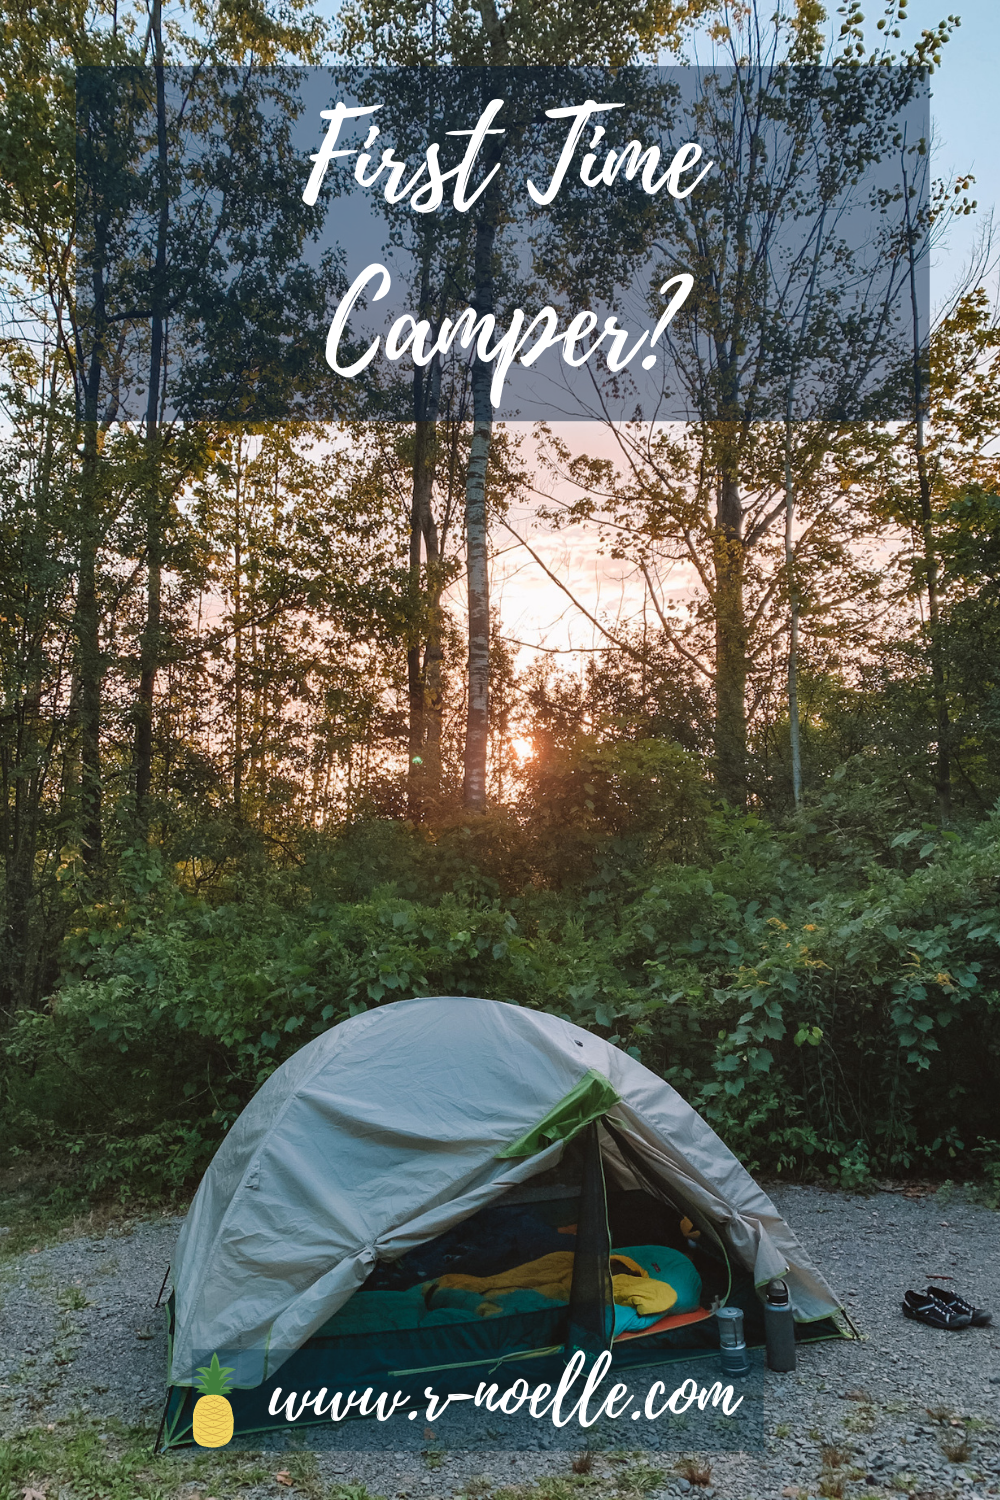 There are things you will need to know before you go camping. If you have never gone camping before, this guide will help you know the essential items you will need. Also help you really consider if tent or cabin camping is the way to go.